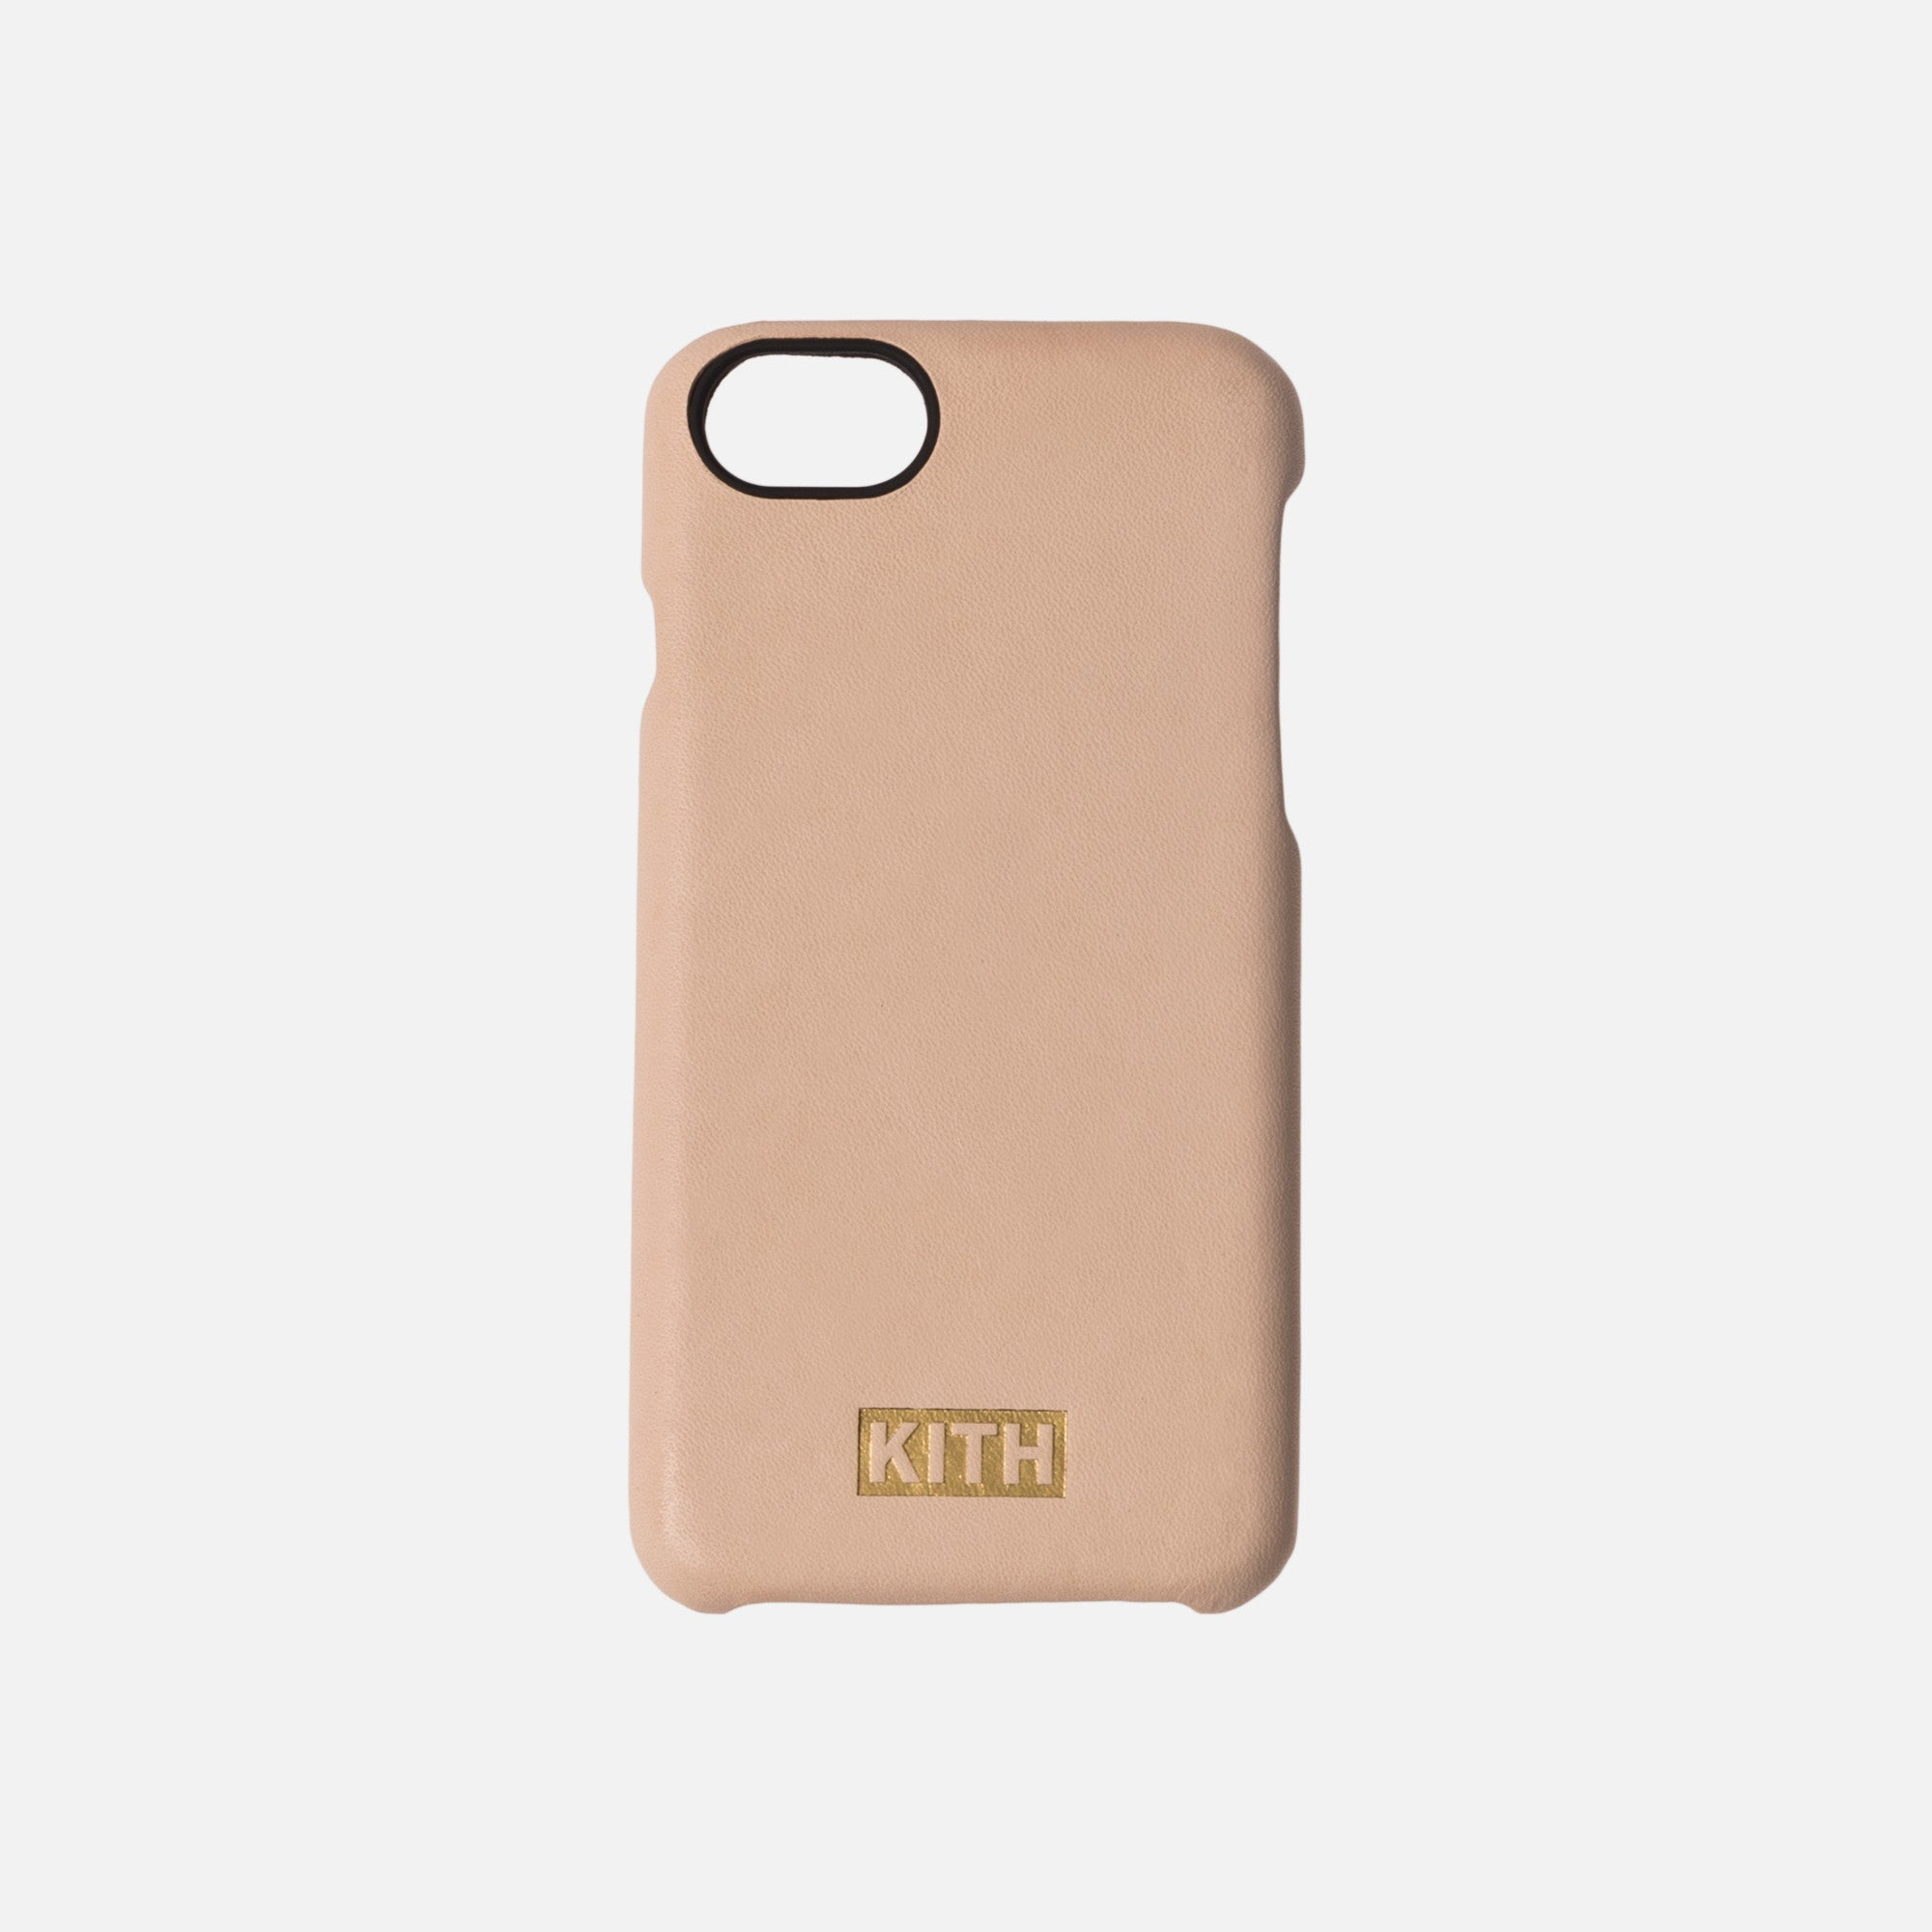 Kith iPhone 7+ Case - Vegtan